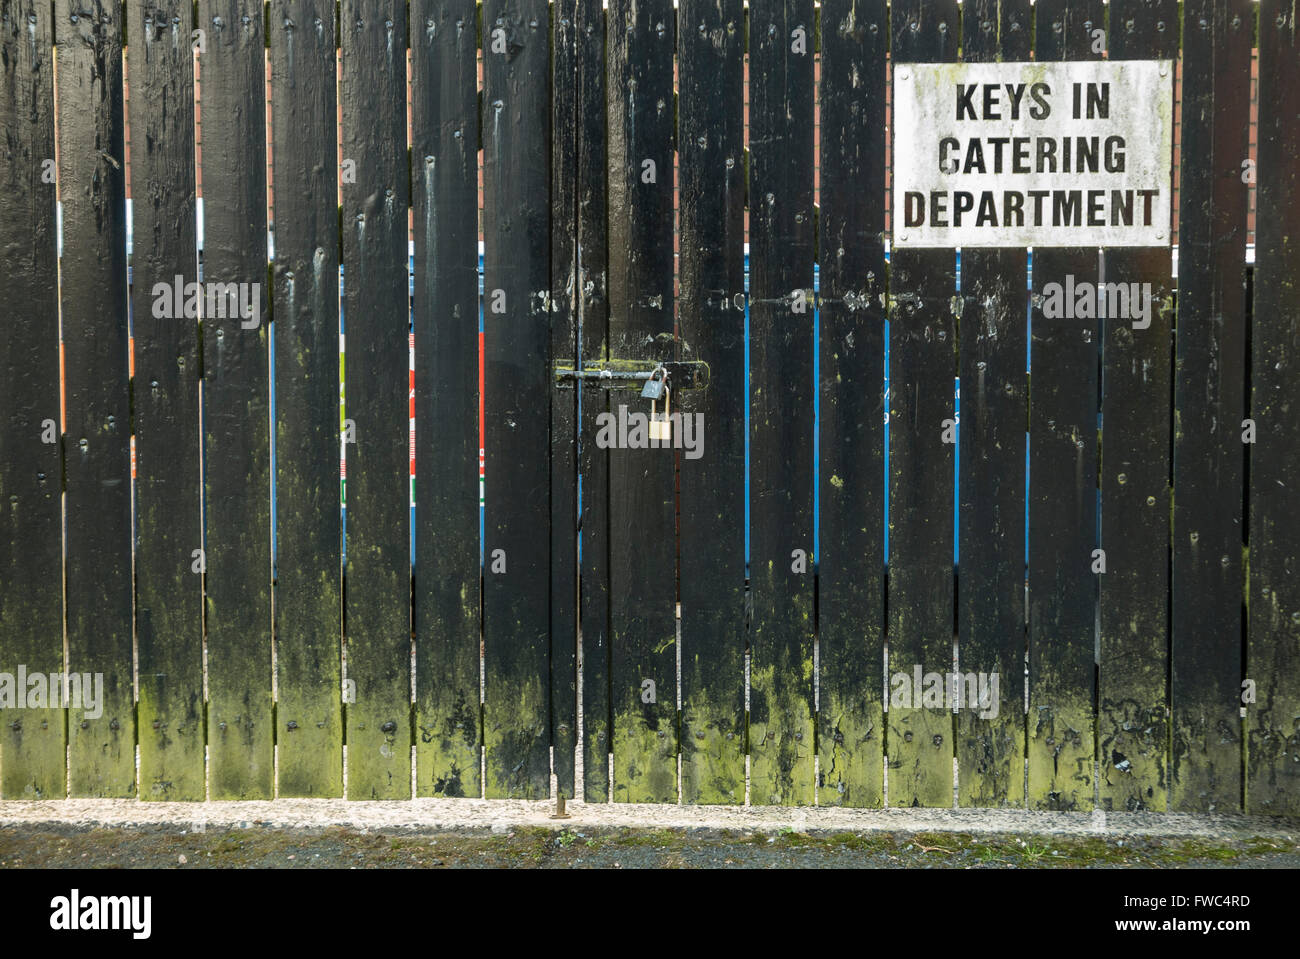 Sign on a locked wooden gate advising people that the keys are available from the catering department. - Stock Image